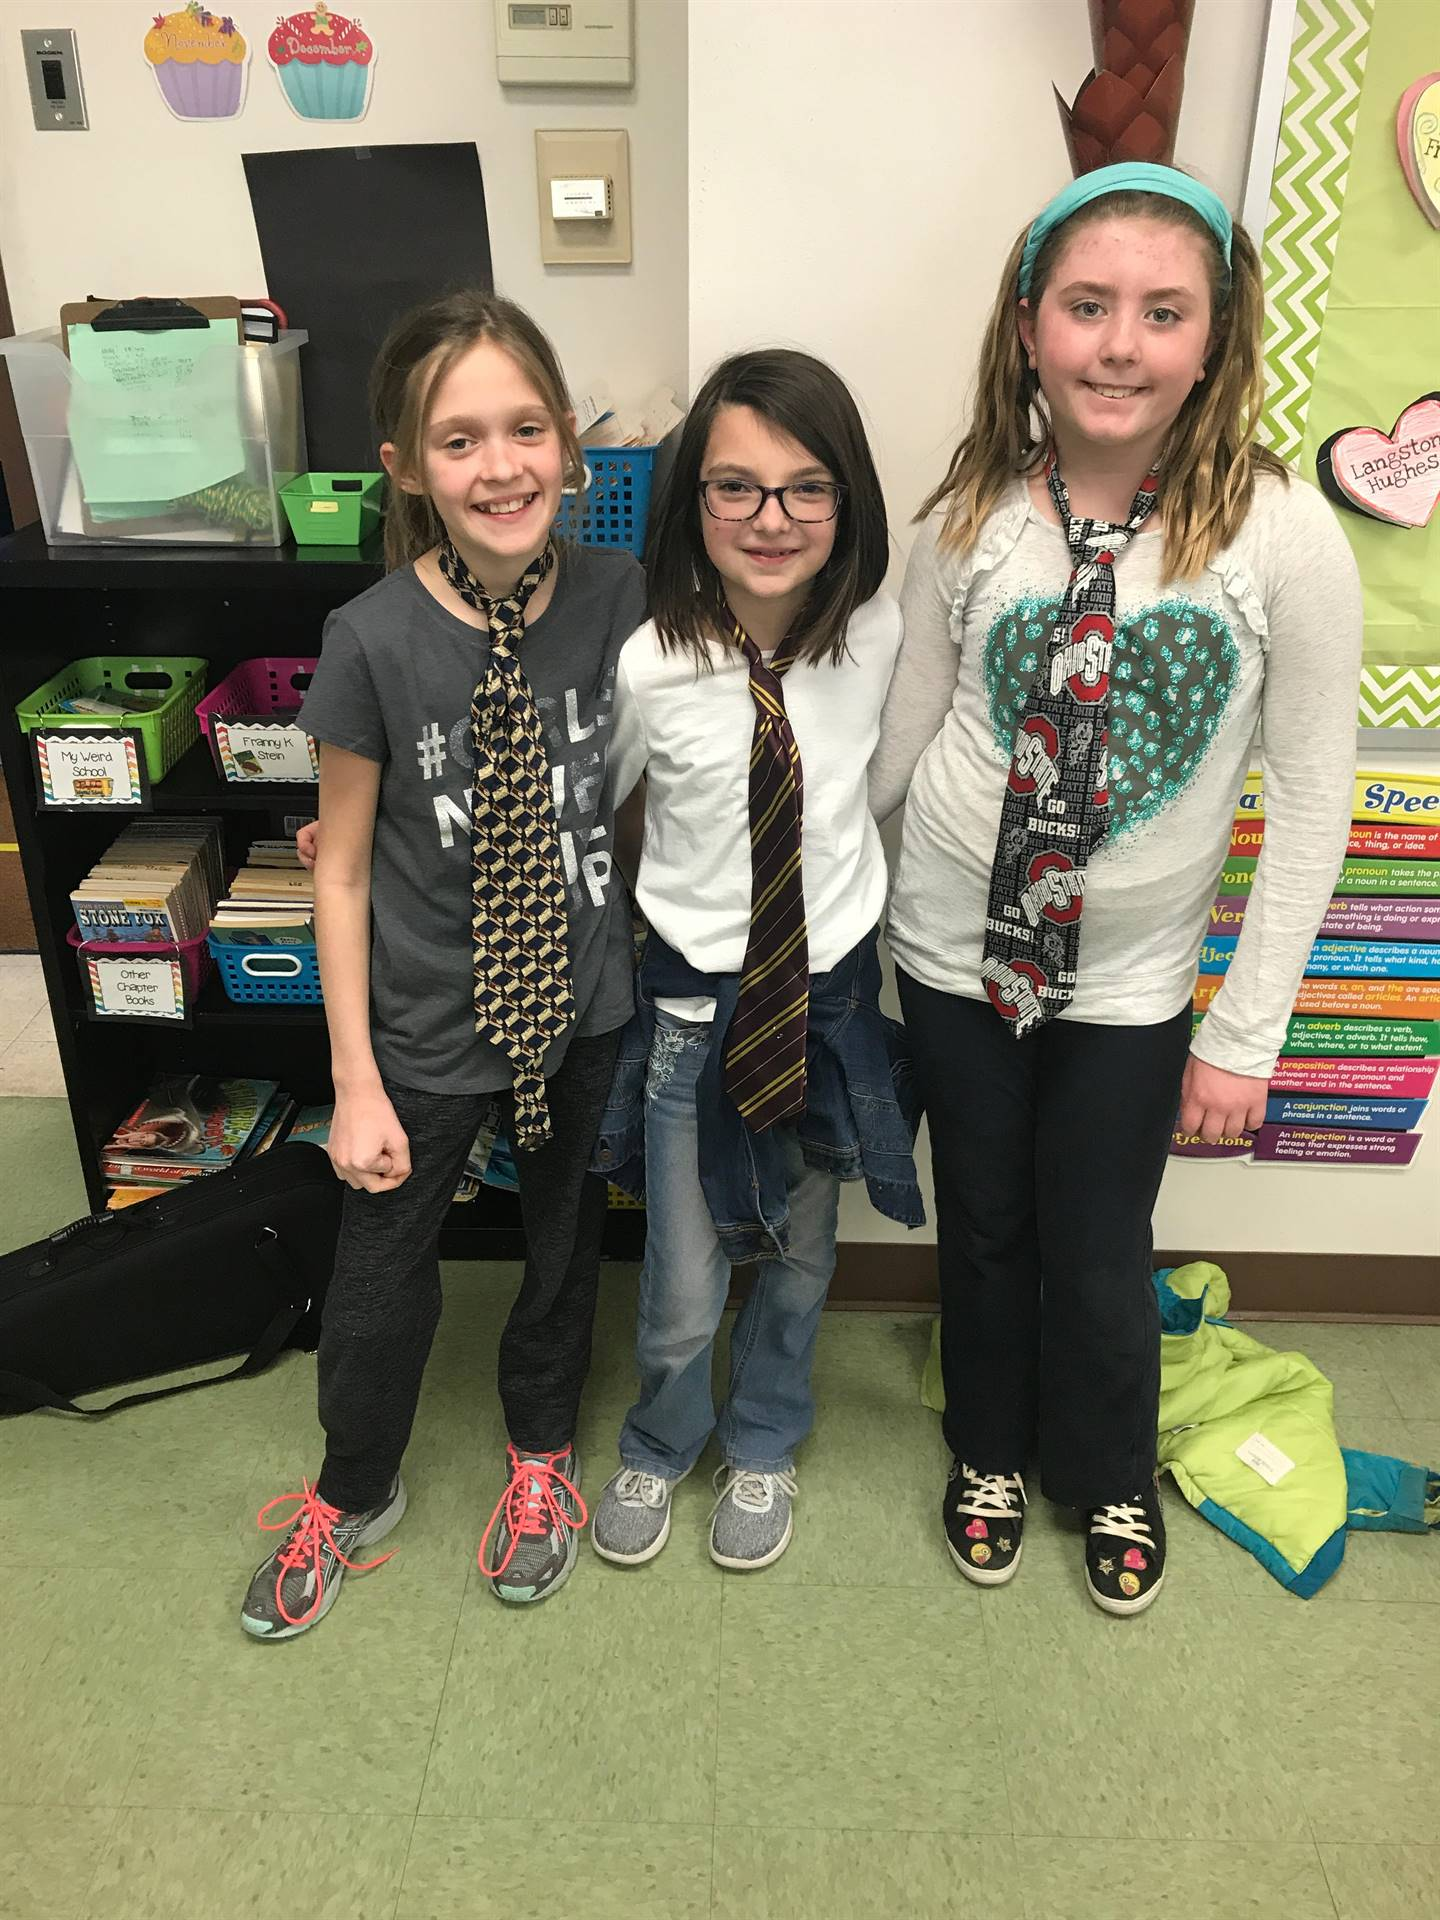 Girls Celebrating Ugly Tie Day for Spirit Week